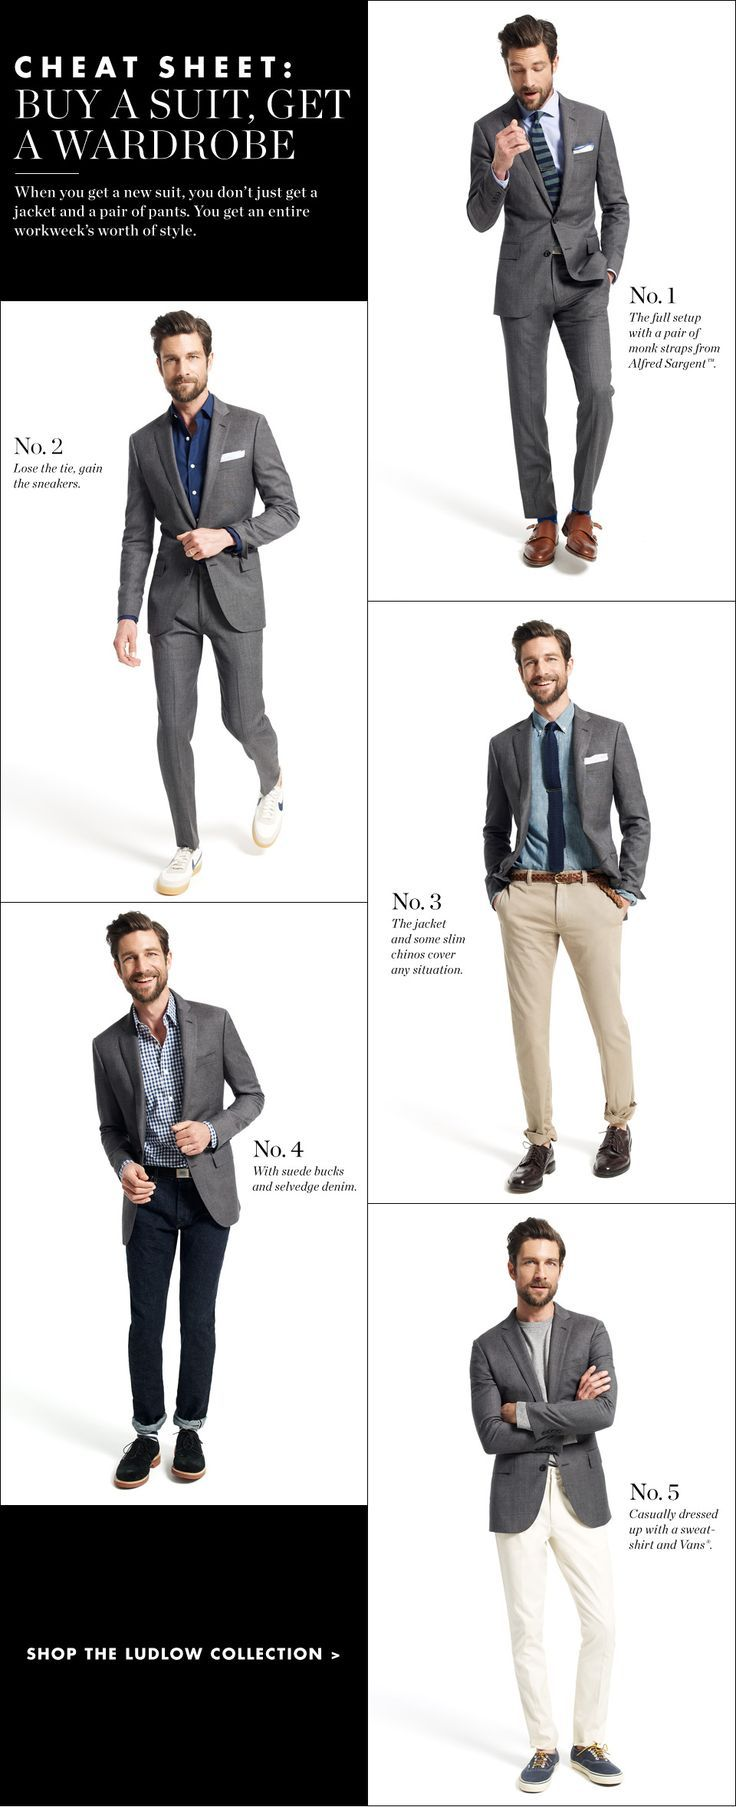 how to break up a suit